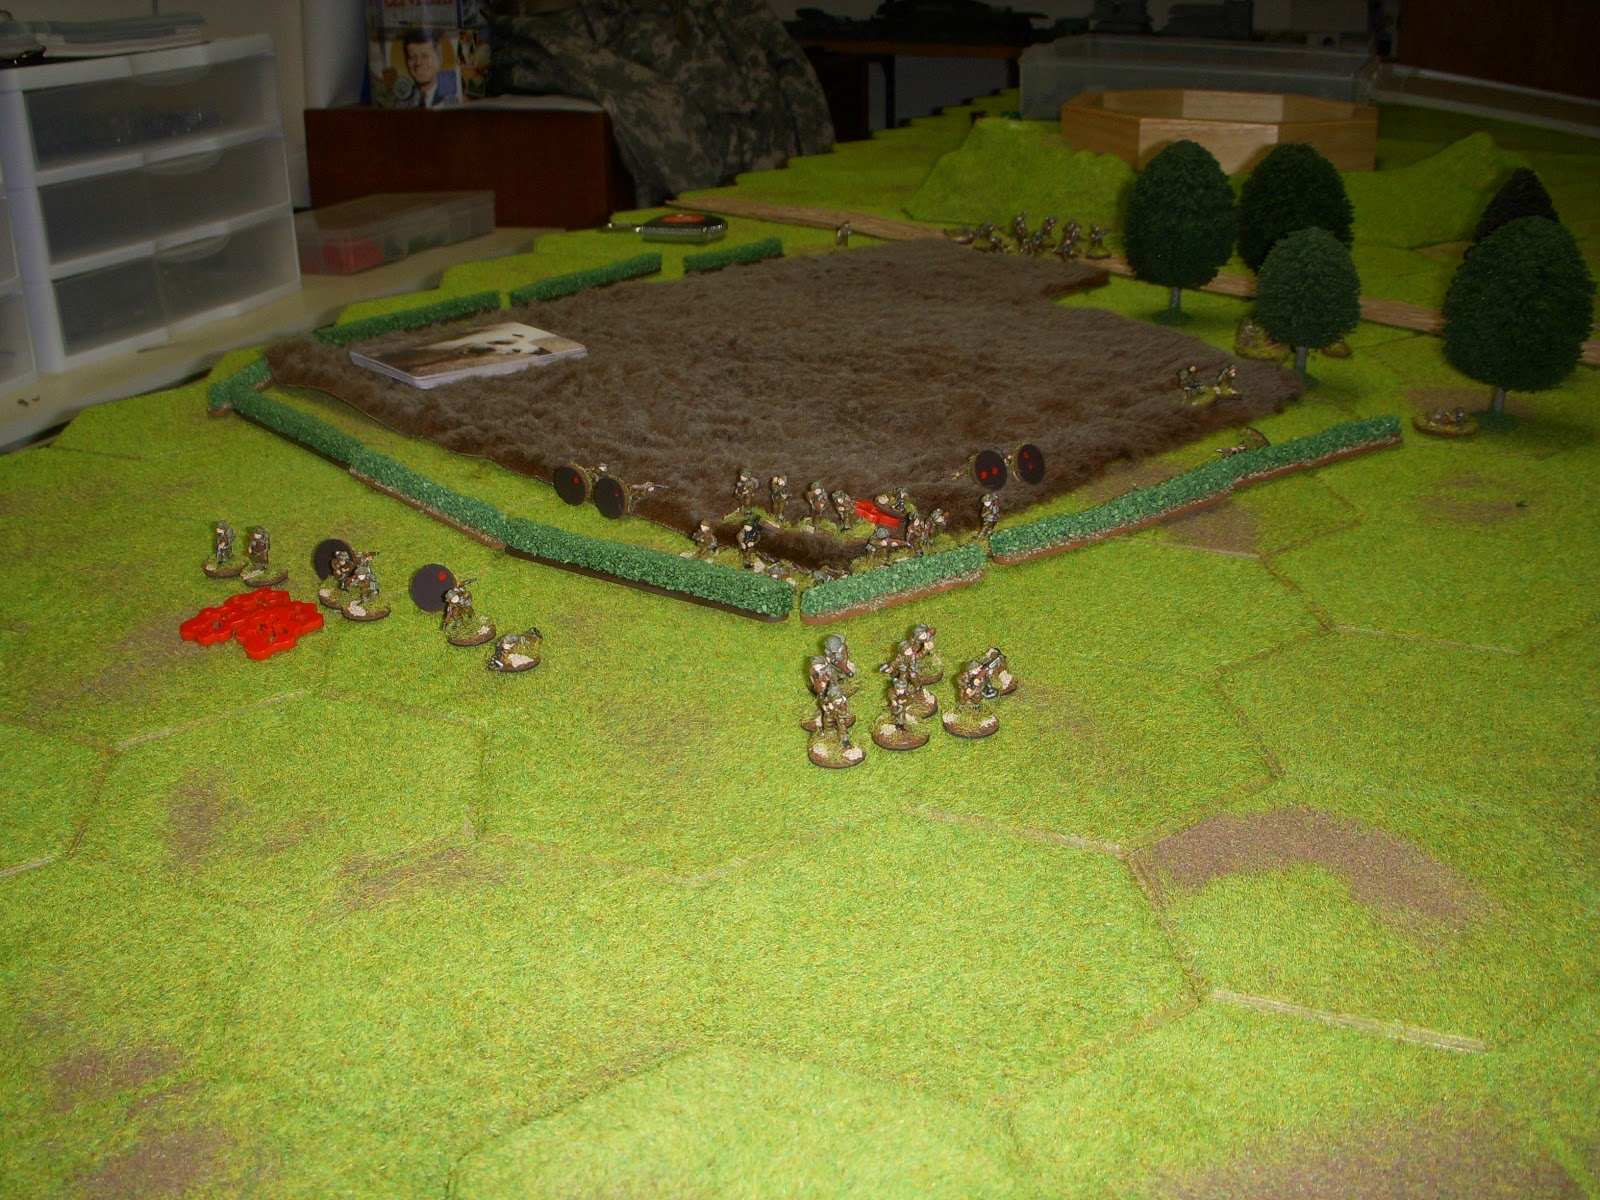 1st Platoon jumps the gun and starts to attack before effective smoke obscures the MG in the house. Casualties are heavy.